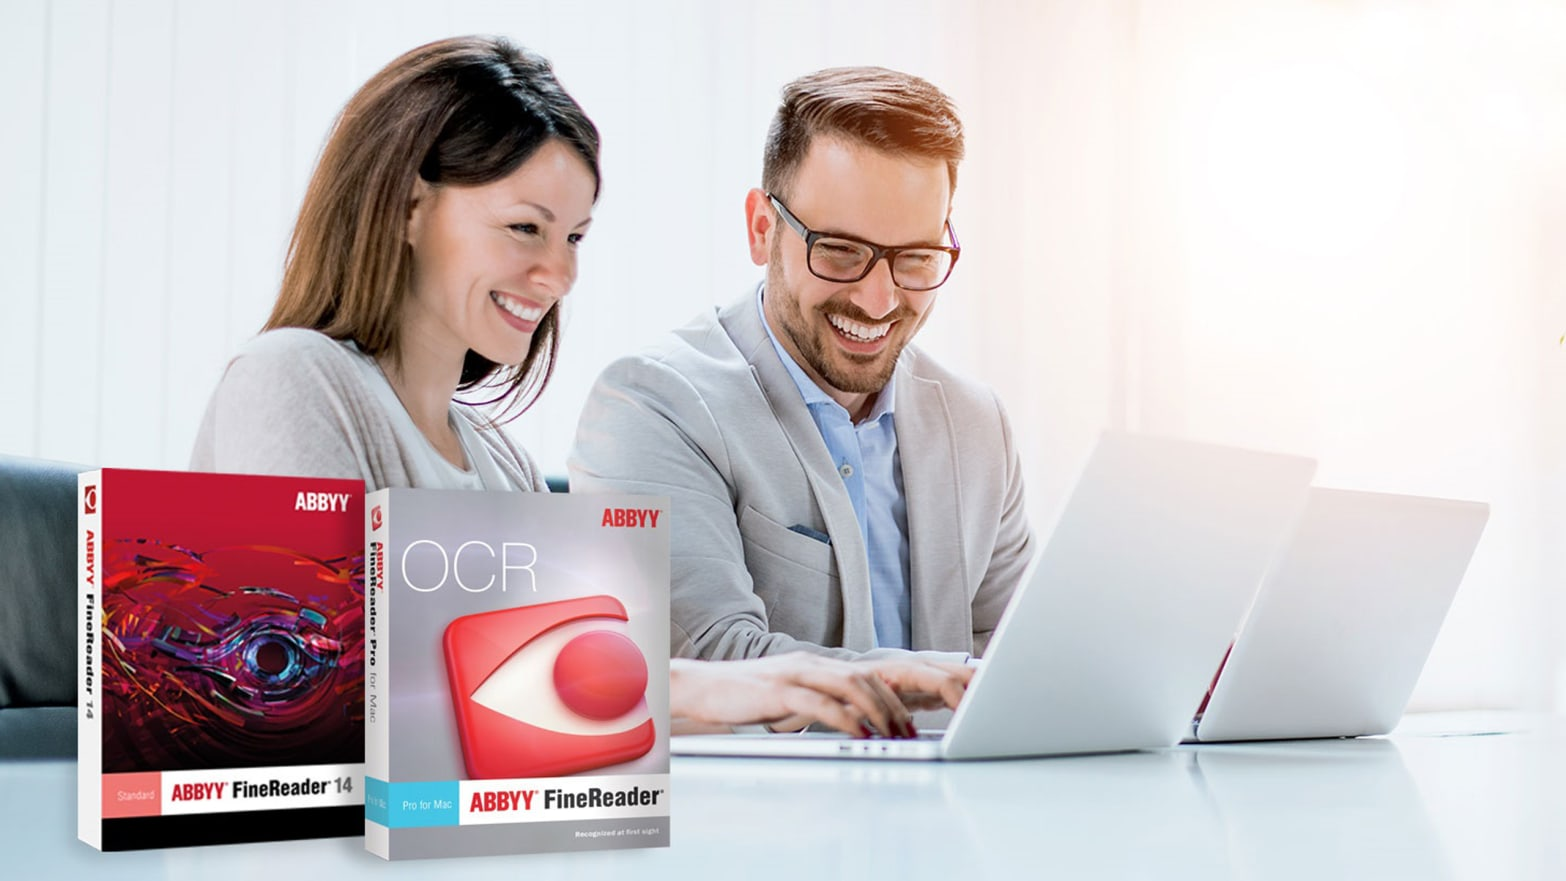 Abbyy Finereader Ocr Pro For Mac increase workplace productivity with this exceptionally